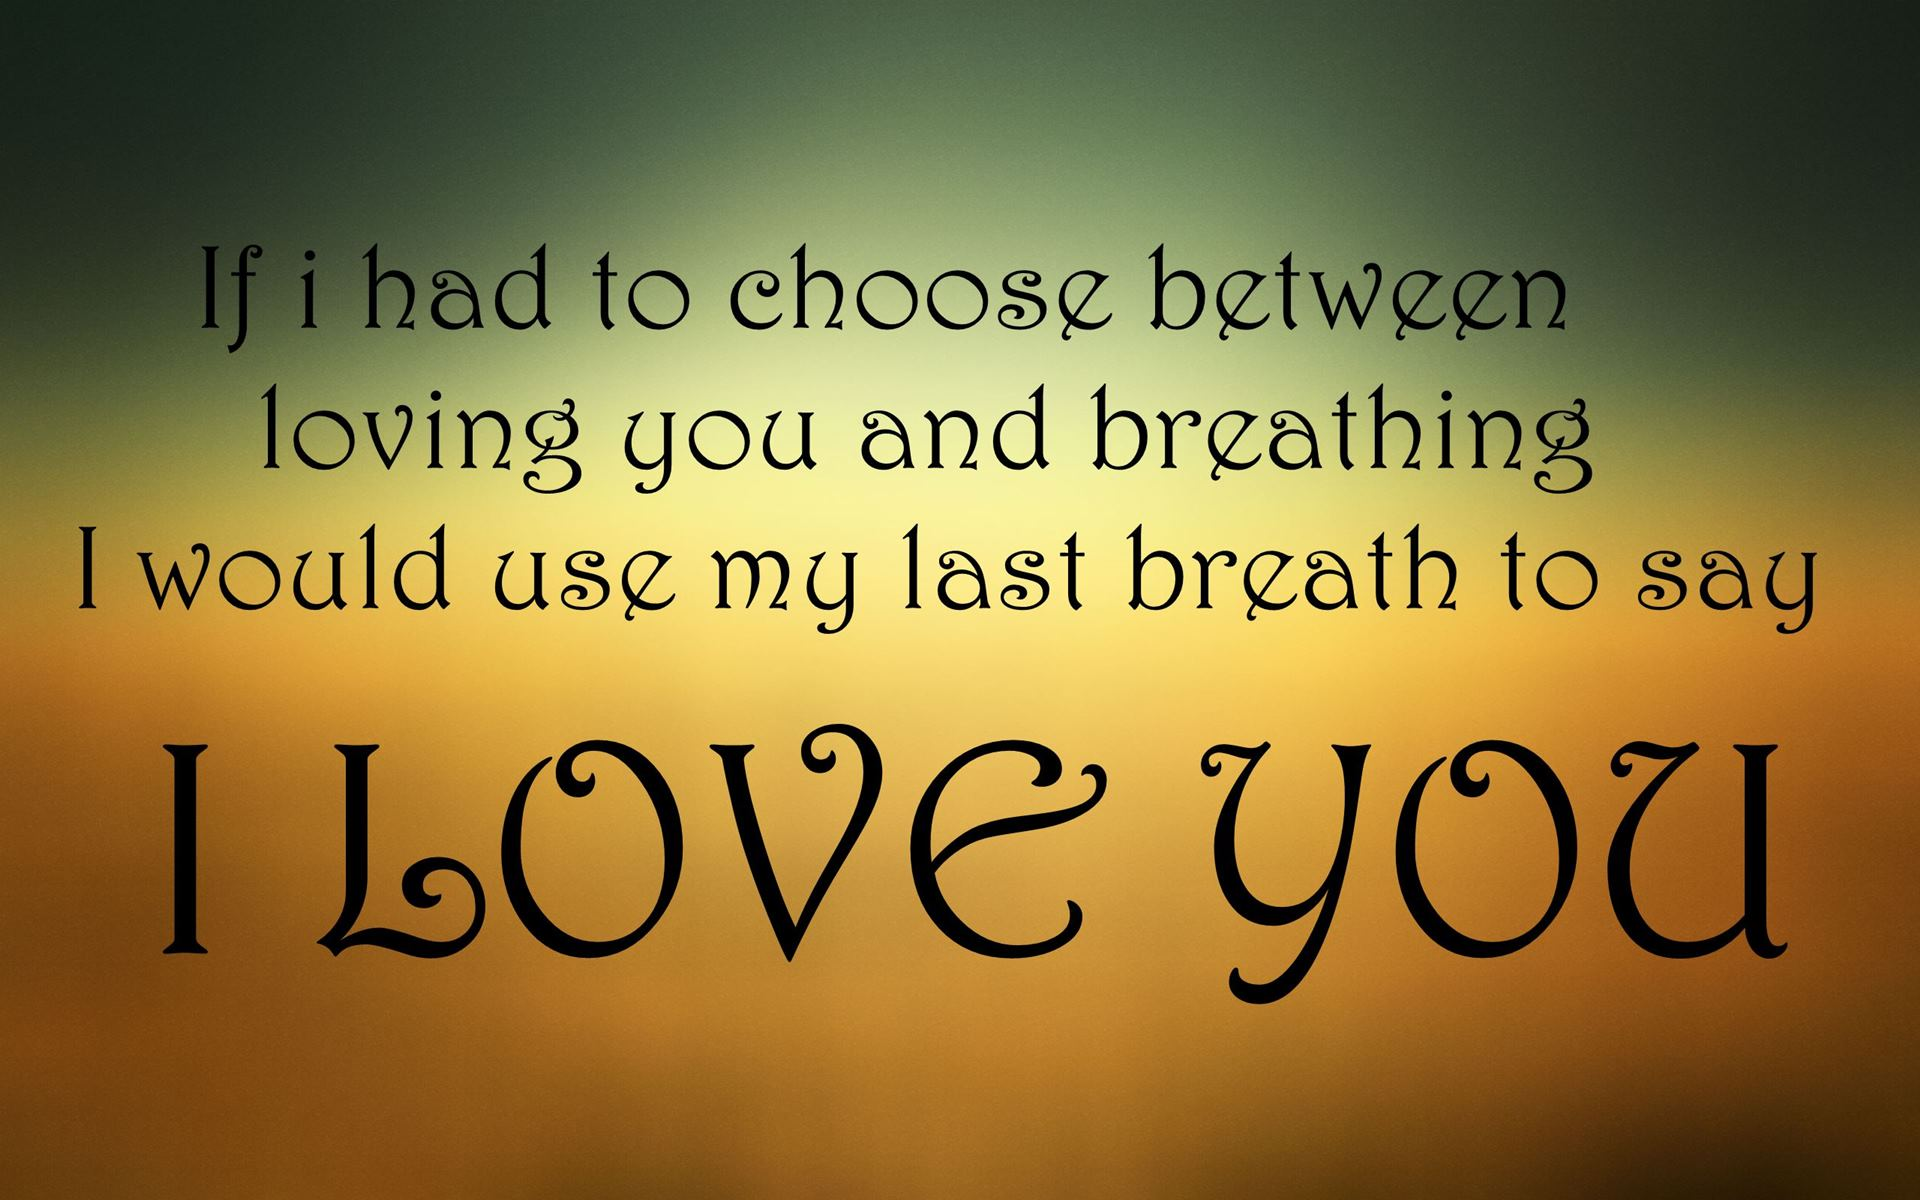 Hd Wallpaper Of Love Quotes : Quotes About Love Wallpapers, Pictures, Images